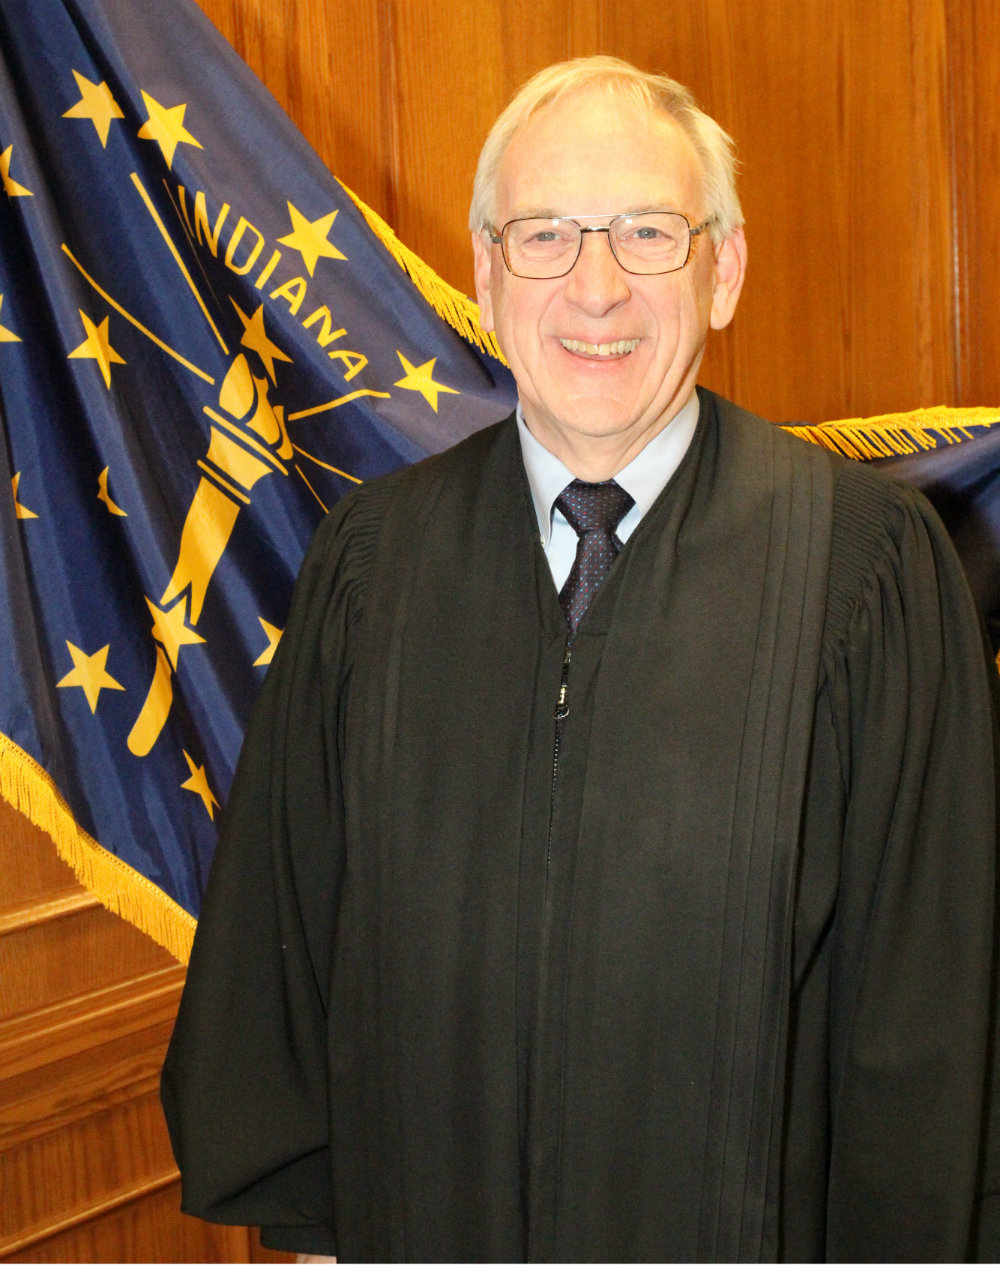 Judge John Surbeck